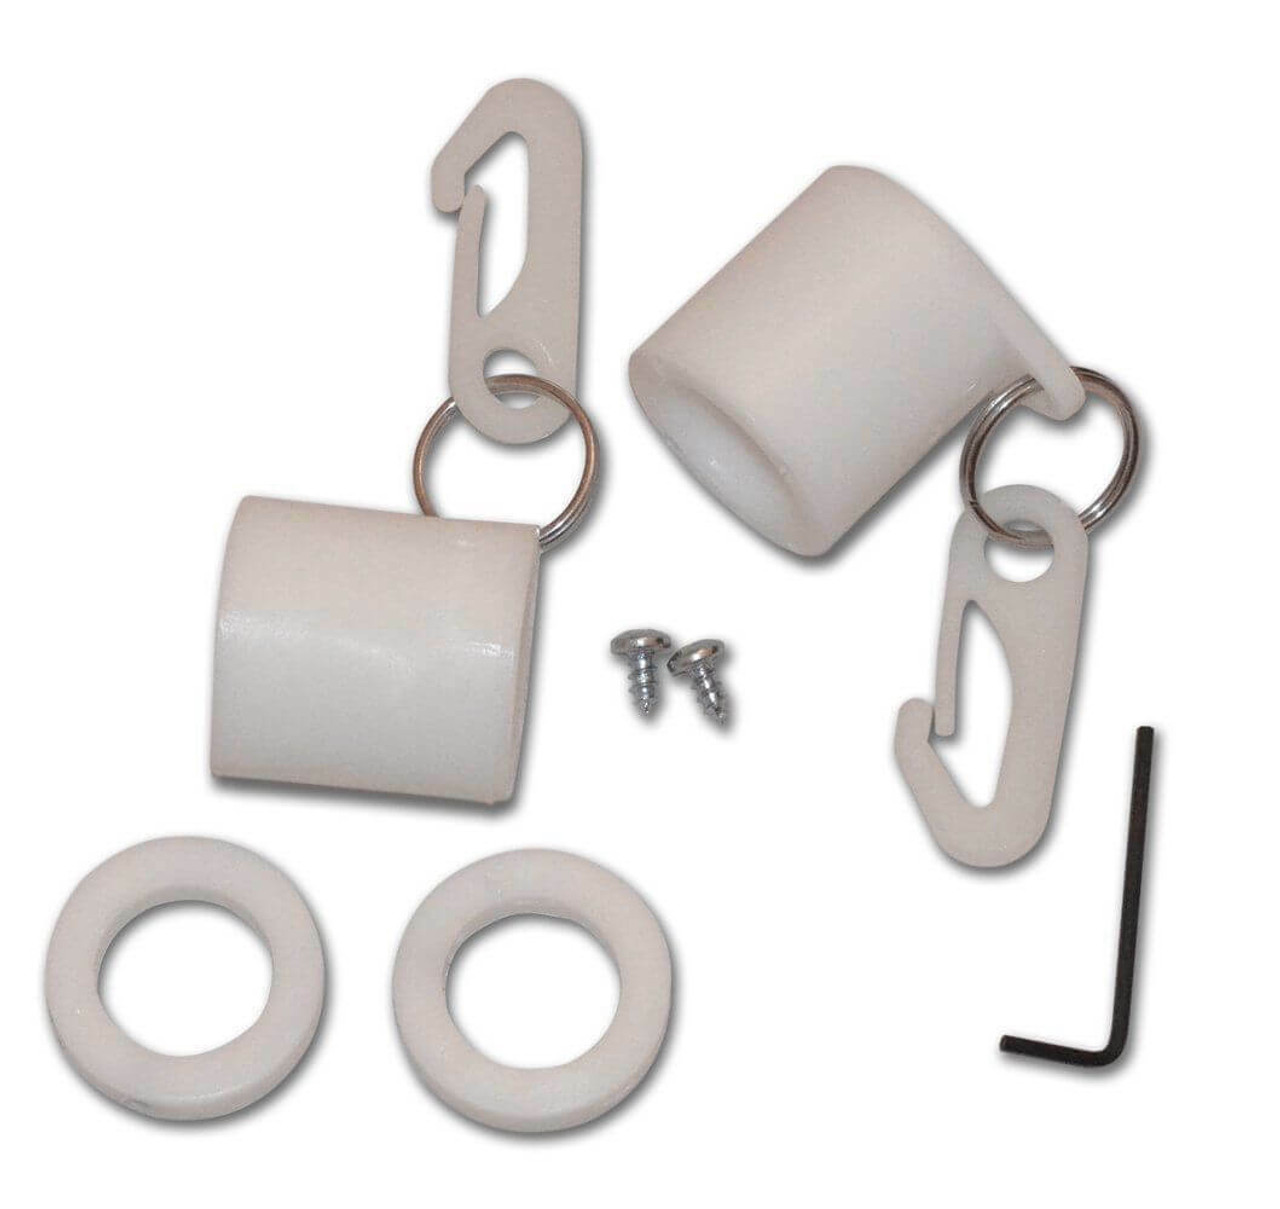 The Non-Tangle Kit is made of thick white plastic. Each kit includes two 2 inch sleeves that slide and move freely on flagpole with plastic clips attached by a metal ring, two white rings to stabilize the free moving sleeves, as well as two silver screws and an Allen wrench.